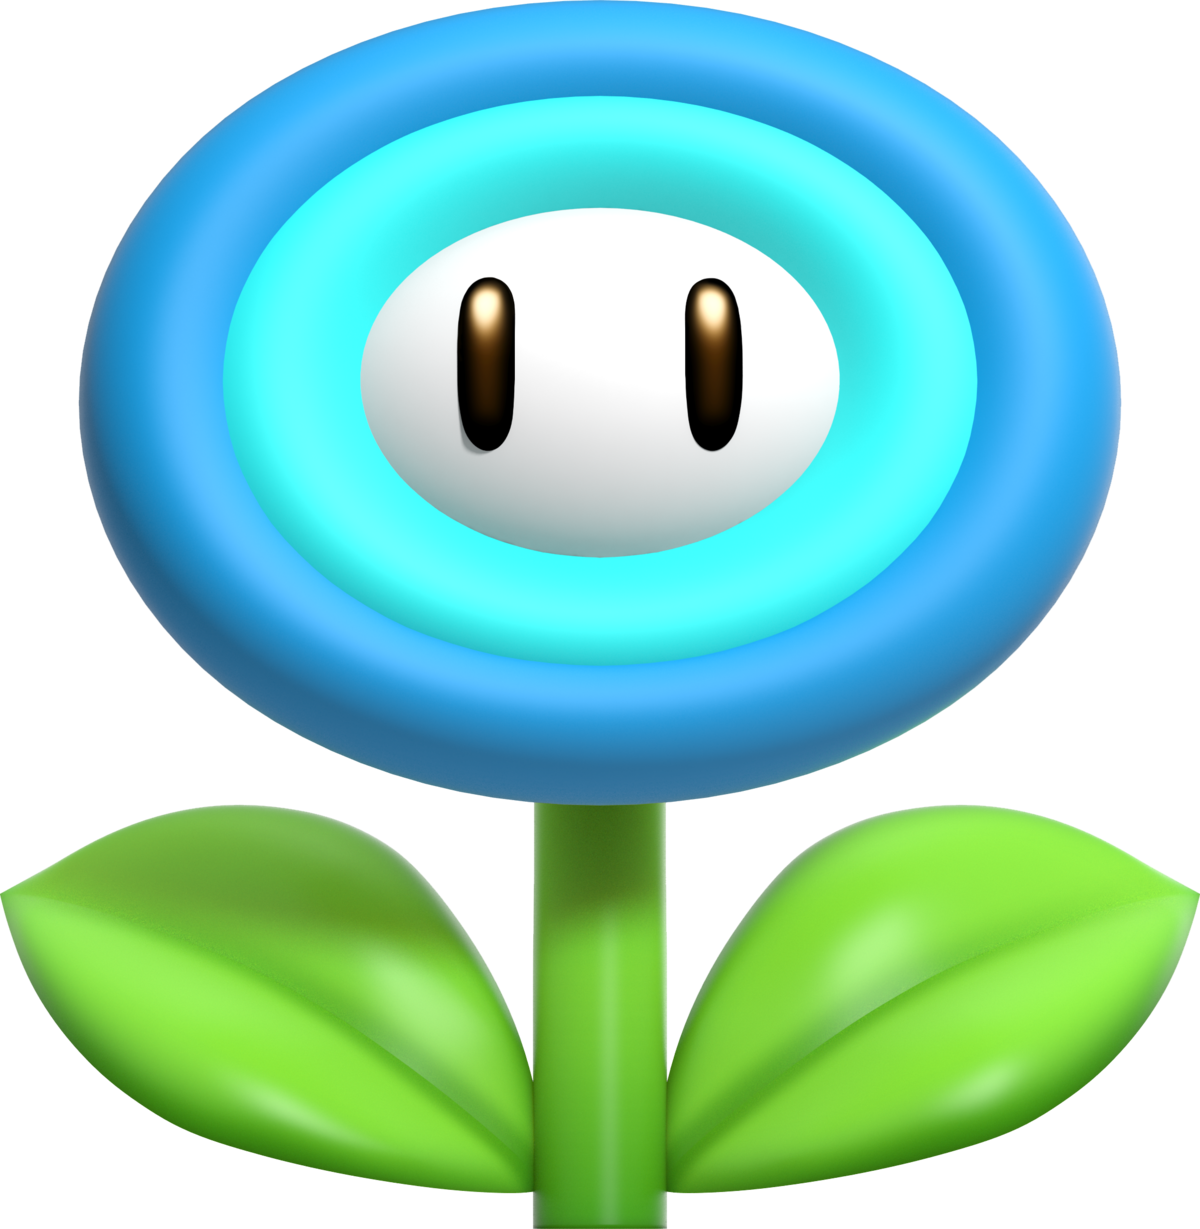 Super mario unneeded flowers clipart graphic free library Ice Flower - Super Mario Wiki, the Mario encyclopedia graphic free library